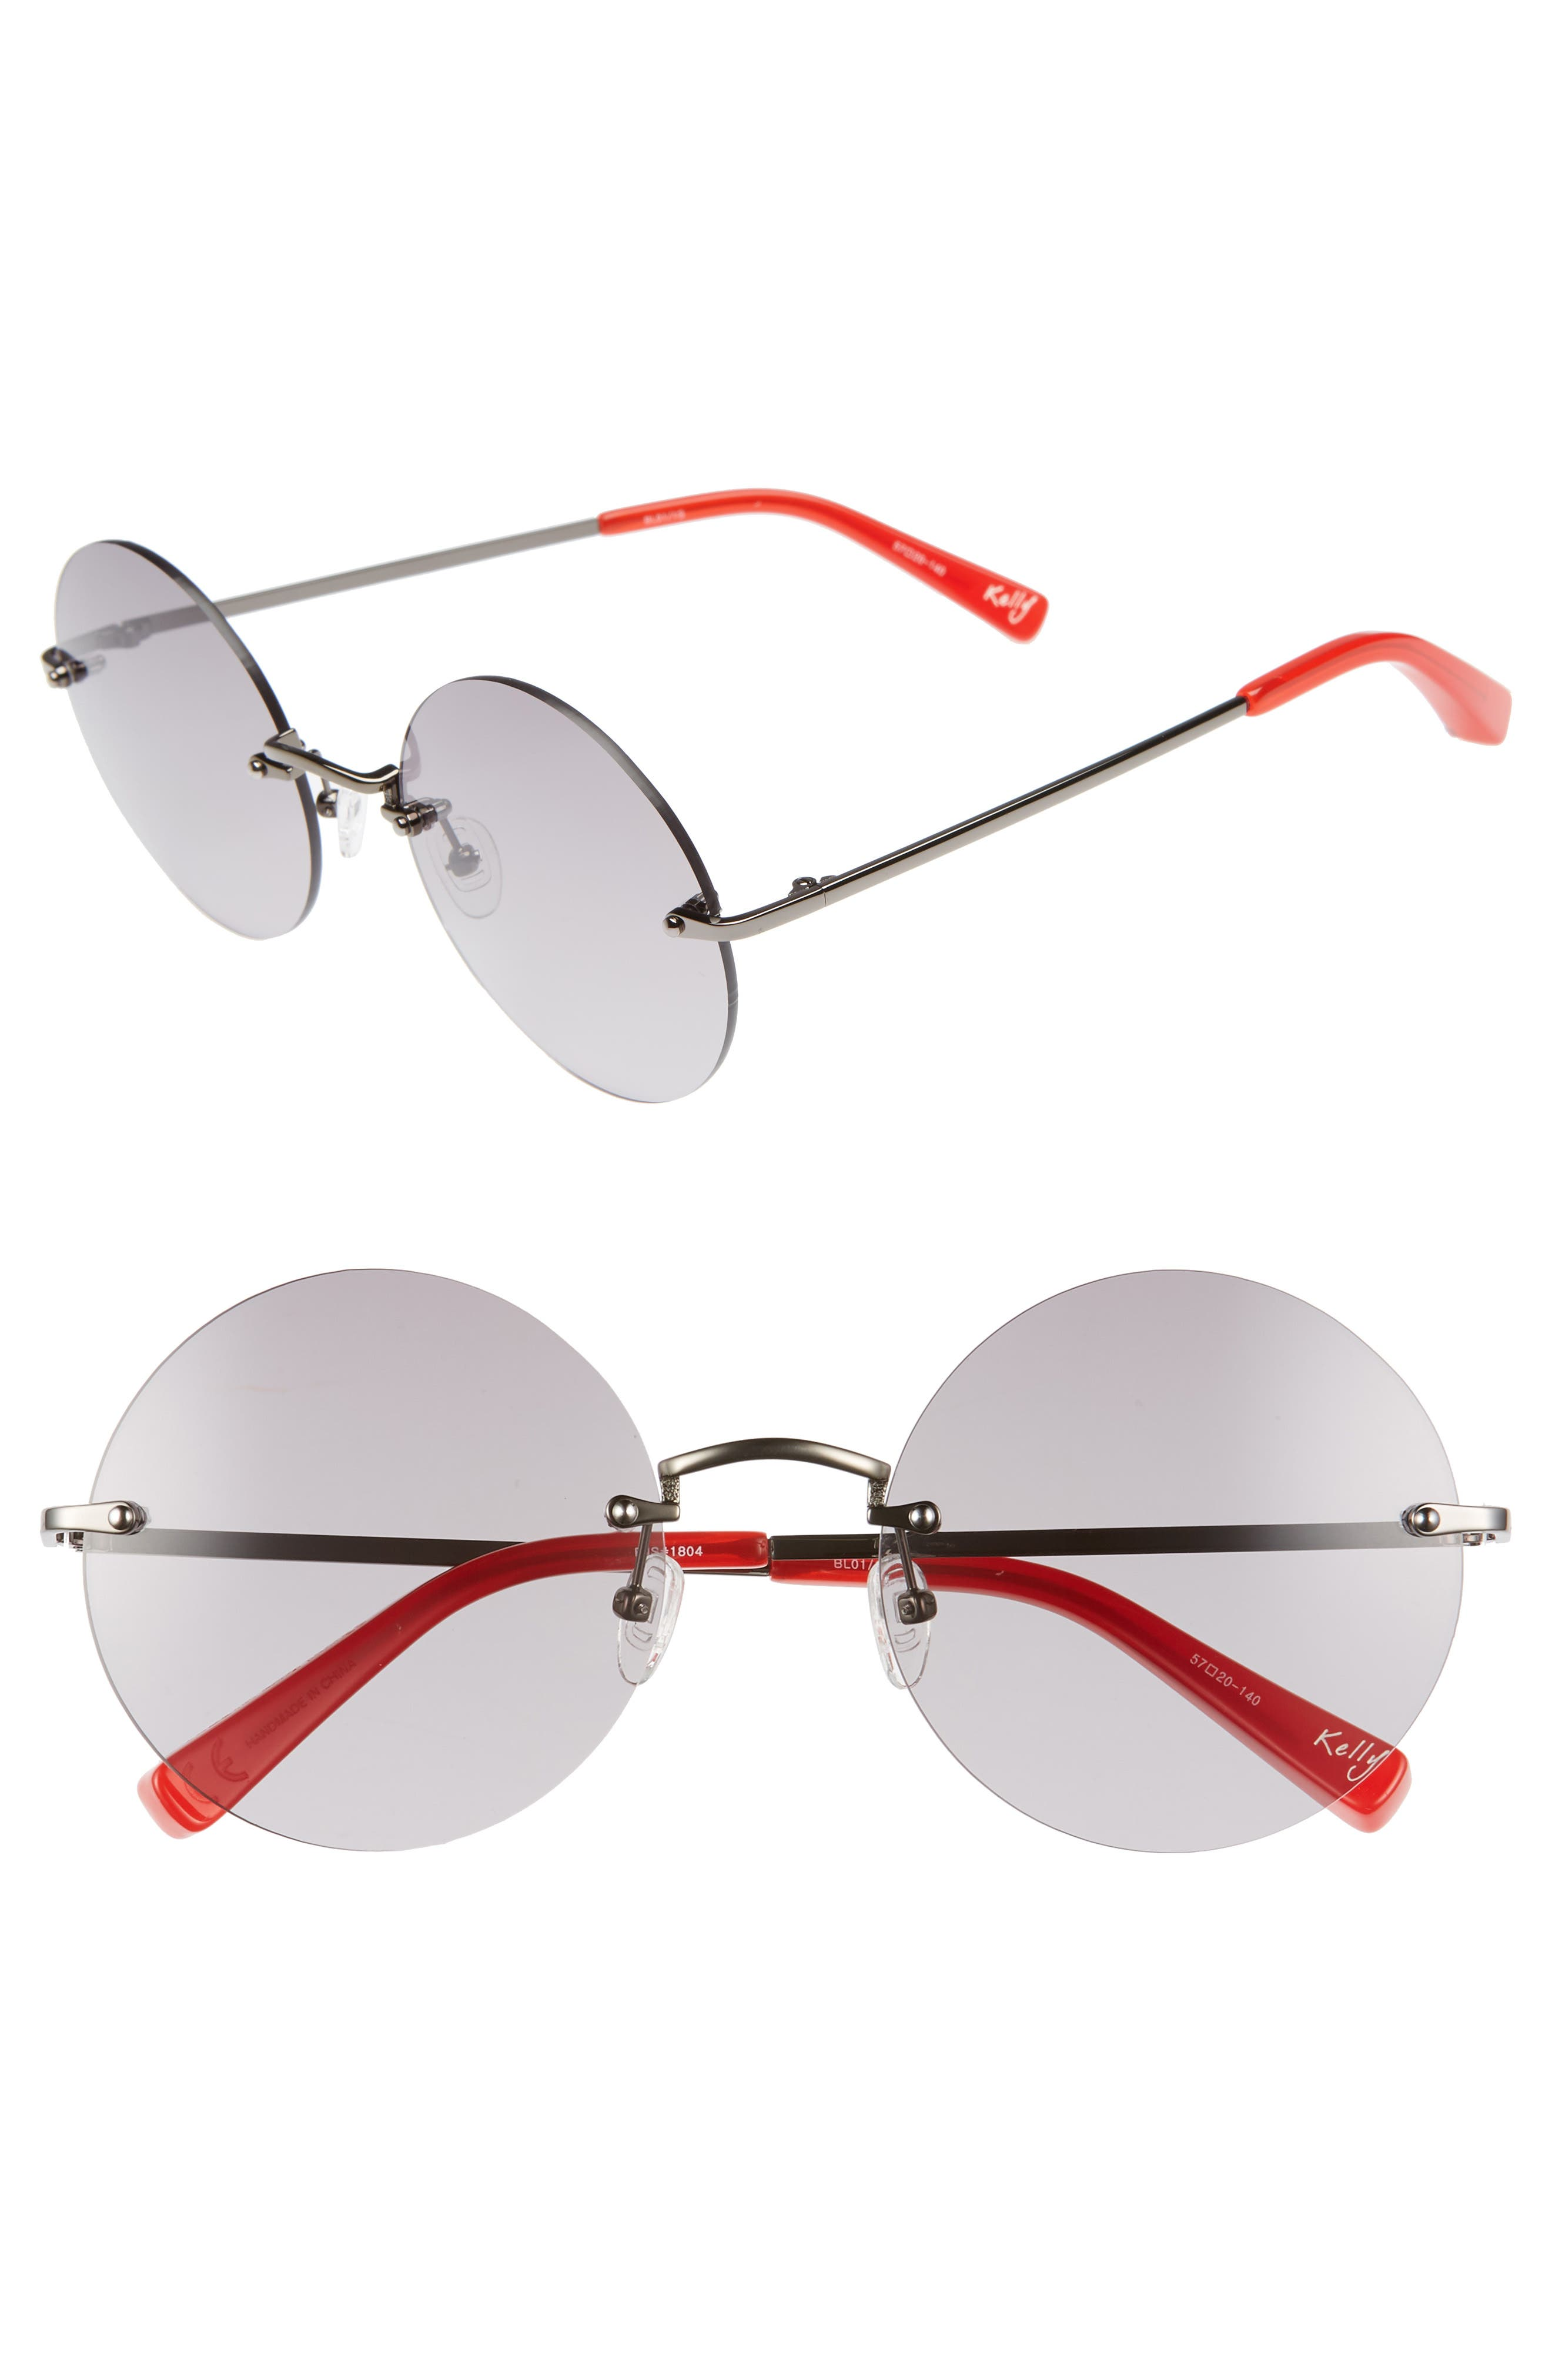 Kelly 57mm Rimless Round Sunglasses,                             Main thumbnail 1, color,                             001